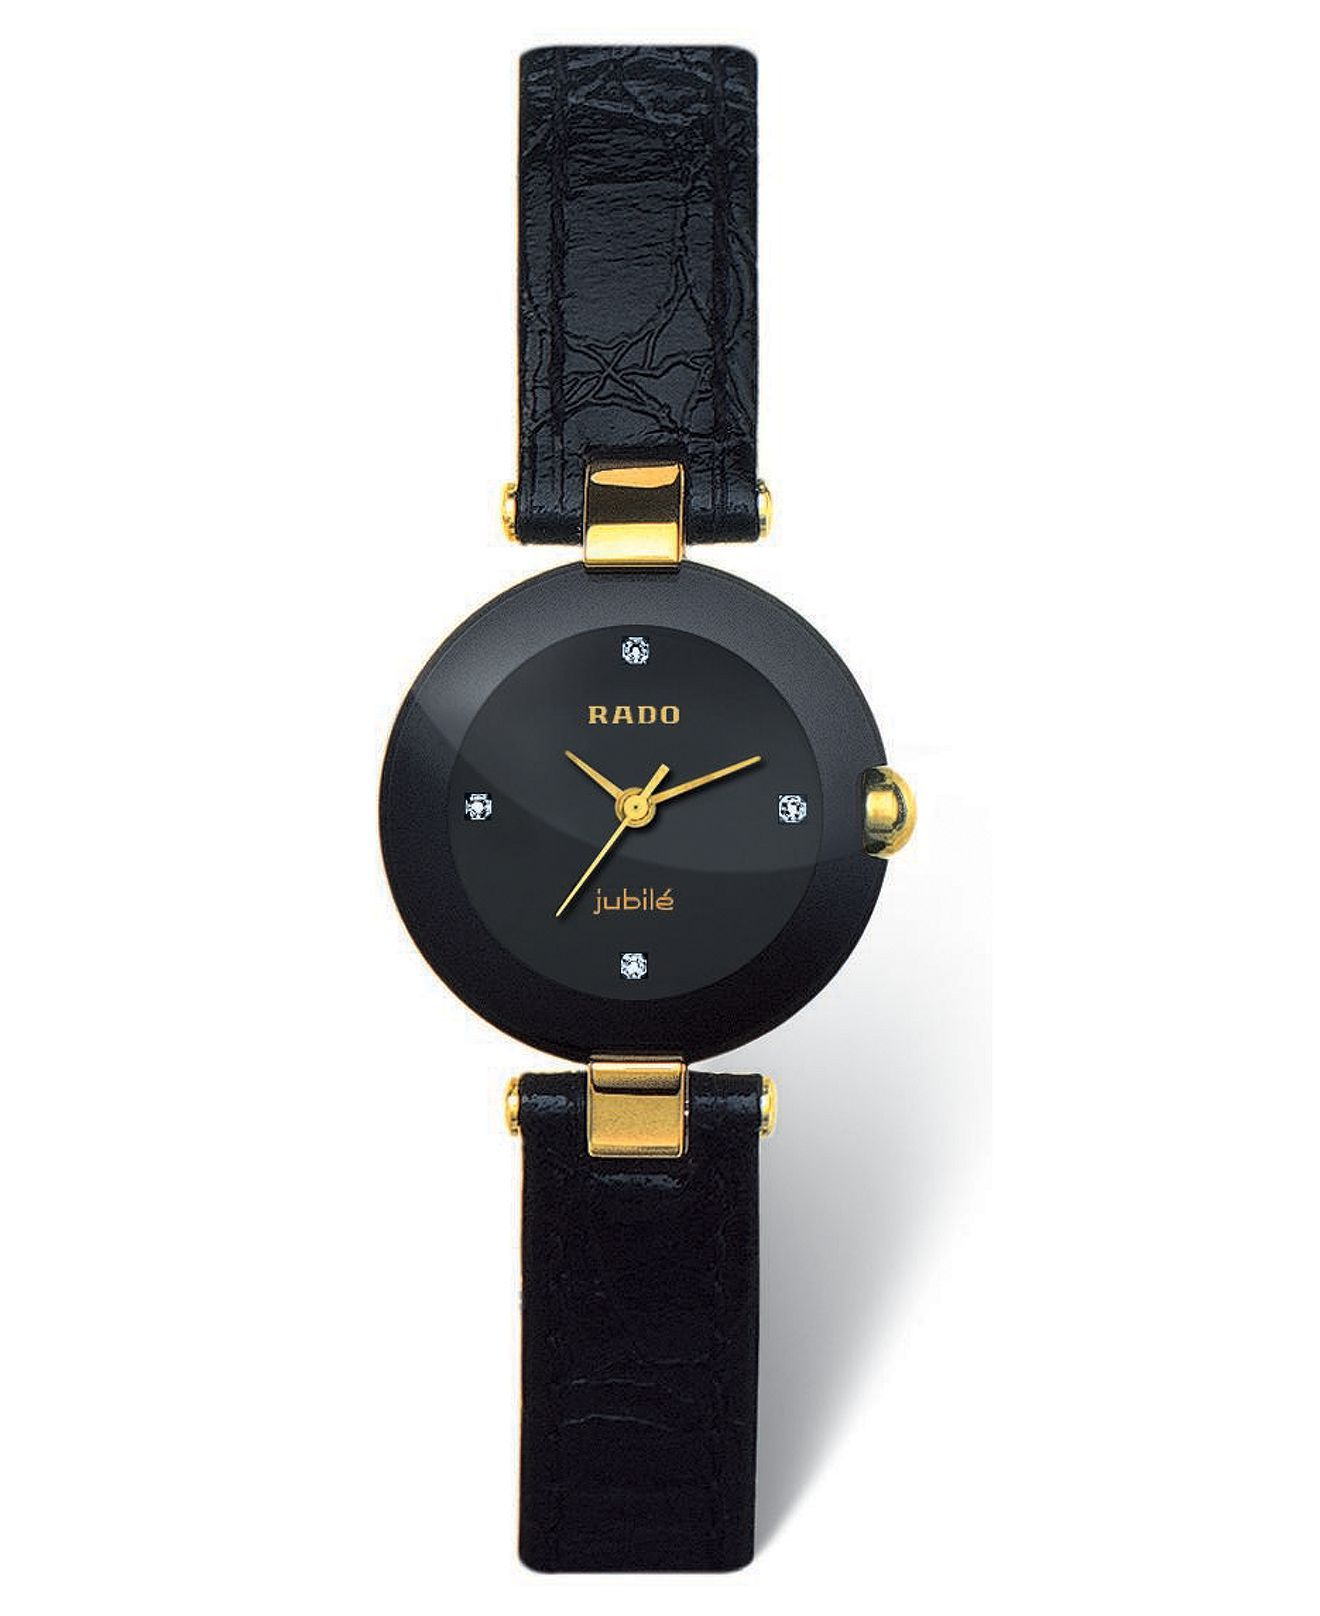 Rado Watch Coupole Jubile Black Leather Strap R22829715 Reviews Watches Jewelry Watches Macy S Watches Women Leather Watches Women Black Black Leather Strap